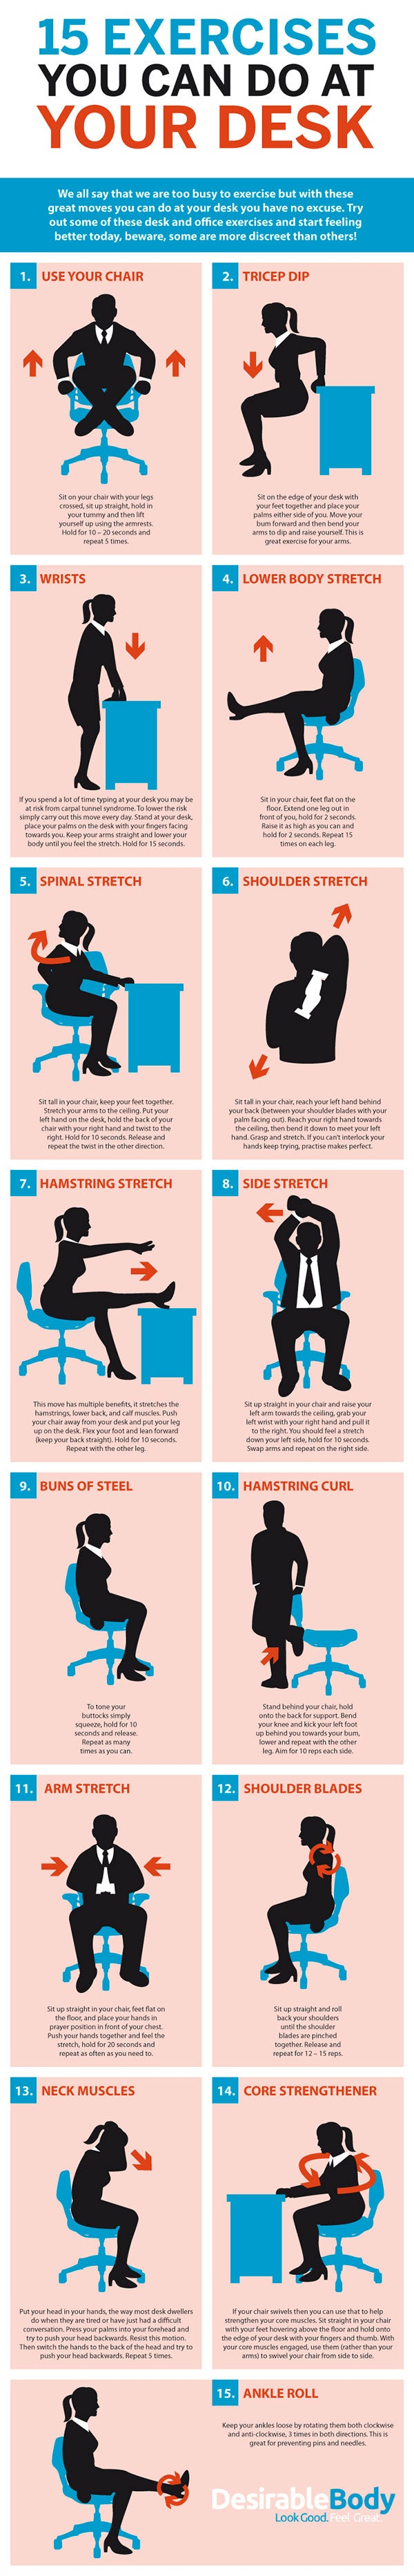 This Graphic Shows Bunch Of Desk Based Exercises For The